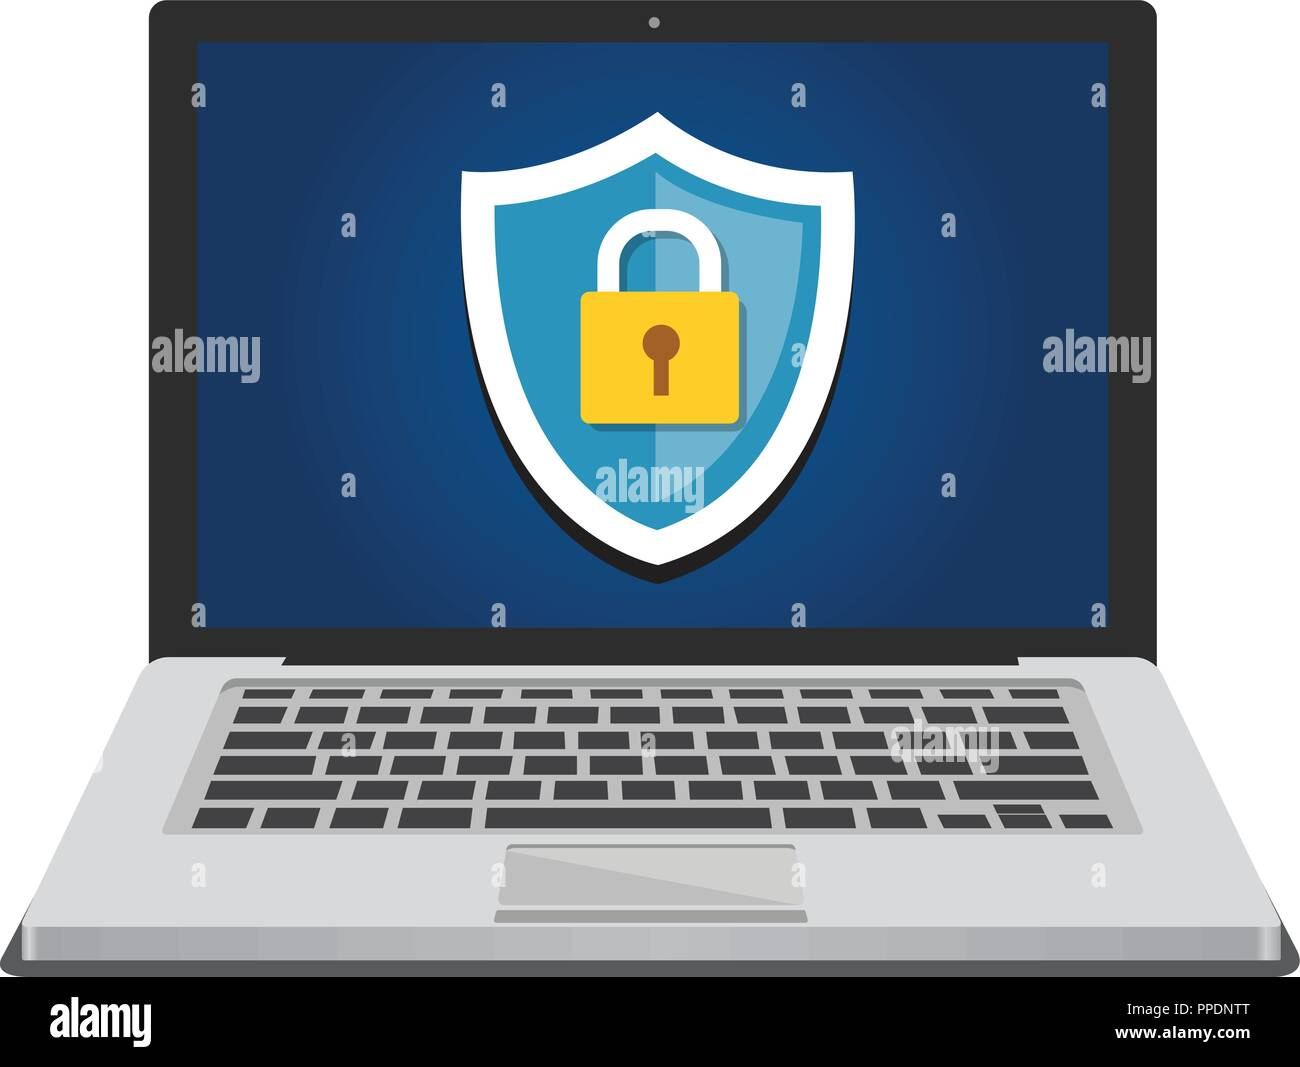 Computer security and data protection concept with shield icon and padlock - Stock Vector